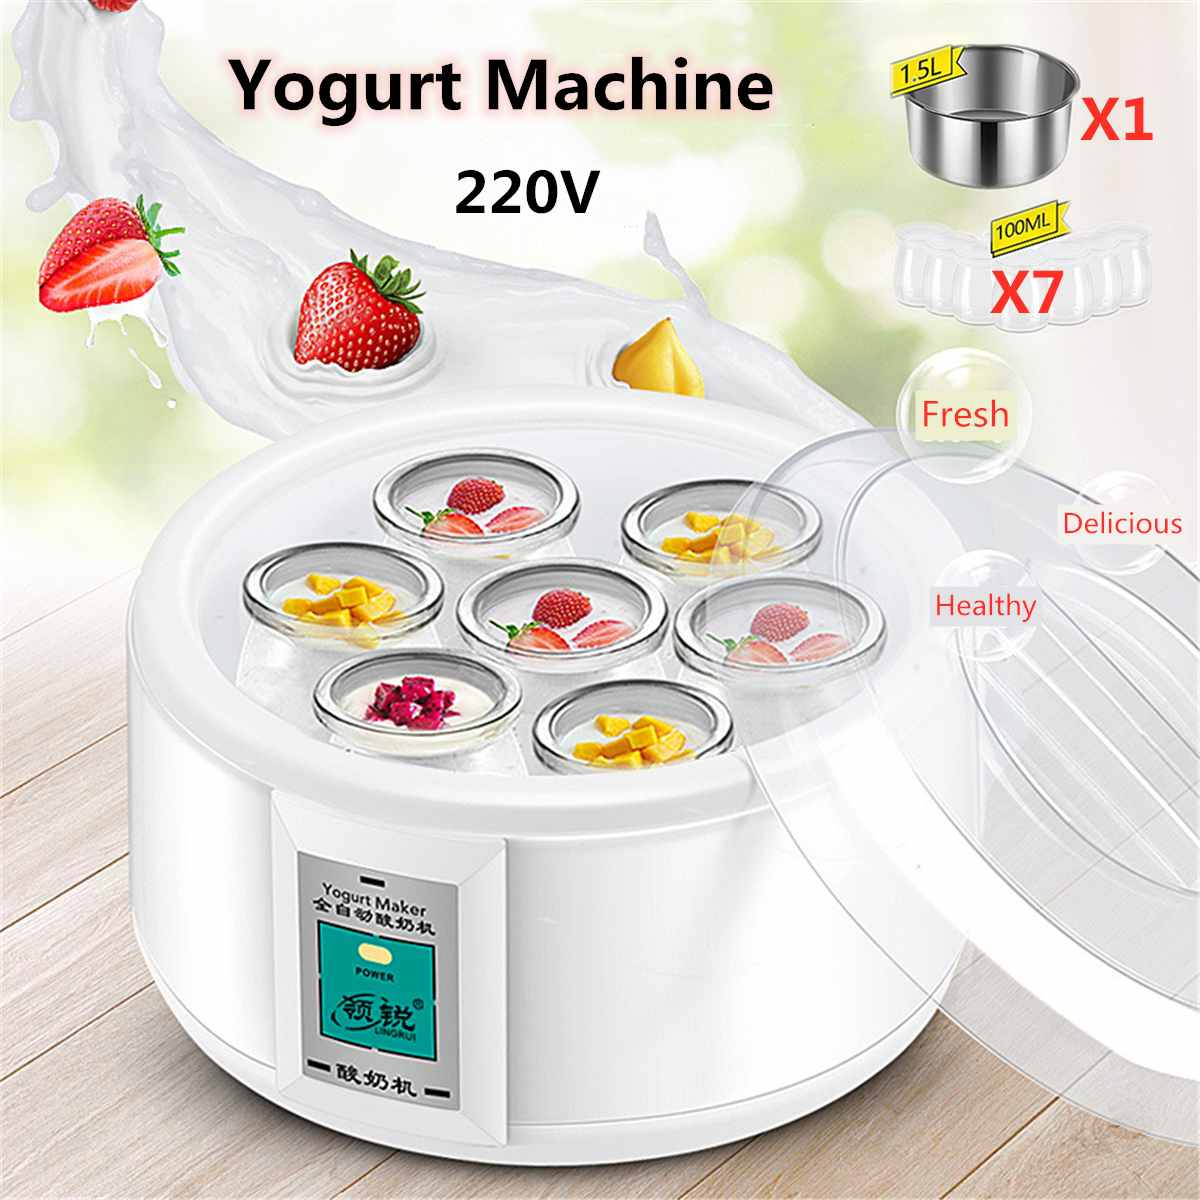 Kitchen Appliances | 1.5L Electric Yogurt Maker Yogurt DIY Tool Kitchen Appliances Automatic Yogurt Maker With 7 Jars Liner Material Stainless Steel